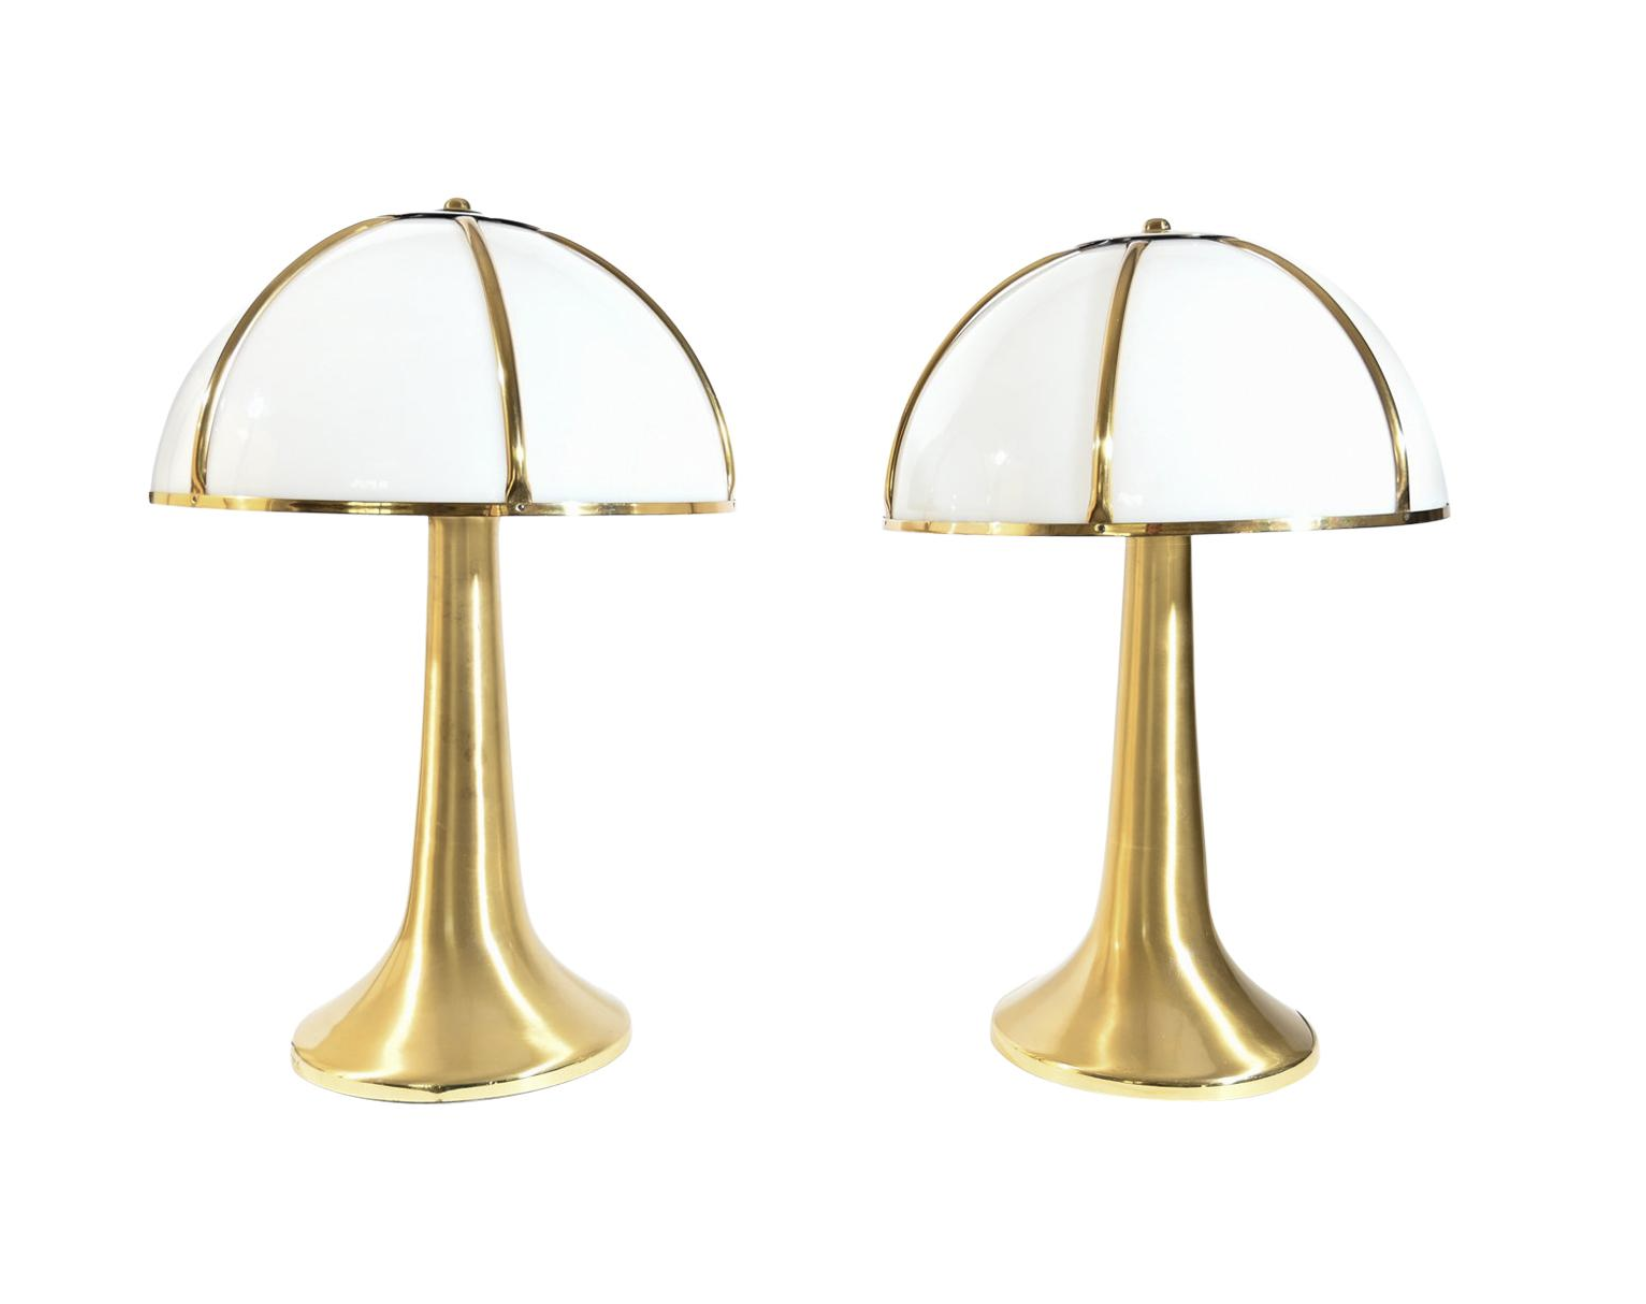 Pair of Signed Gabriella Crespi Fungo Table Lamps